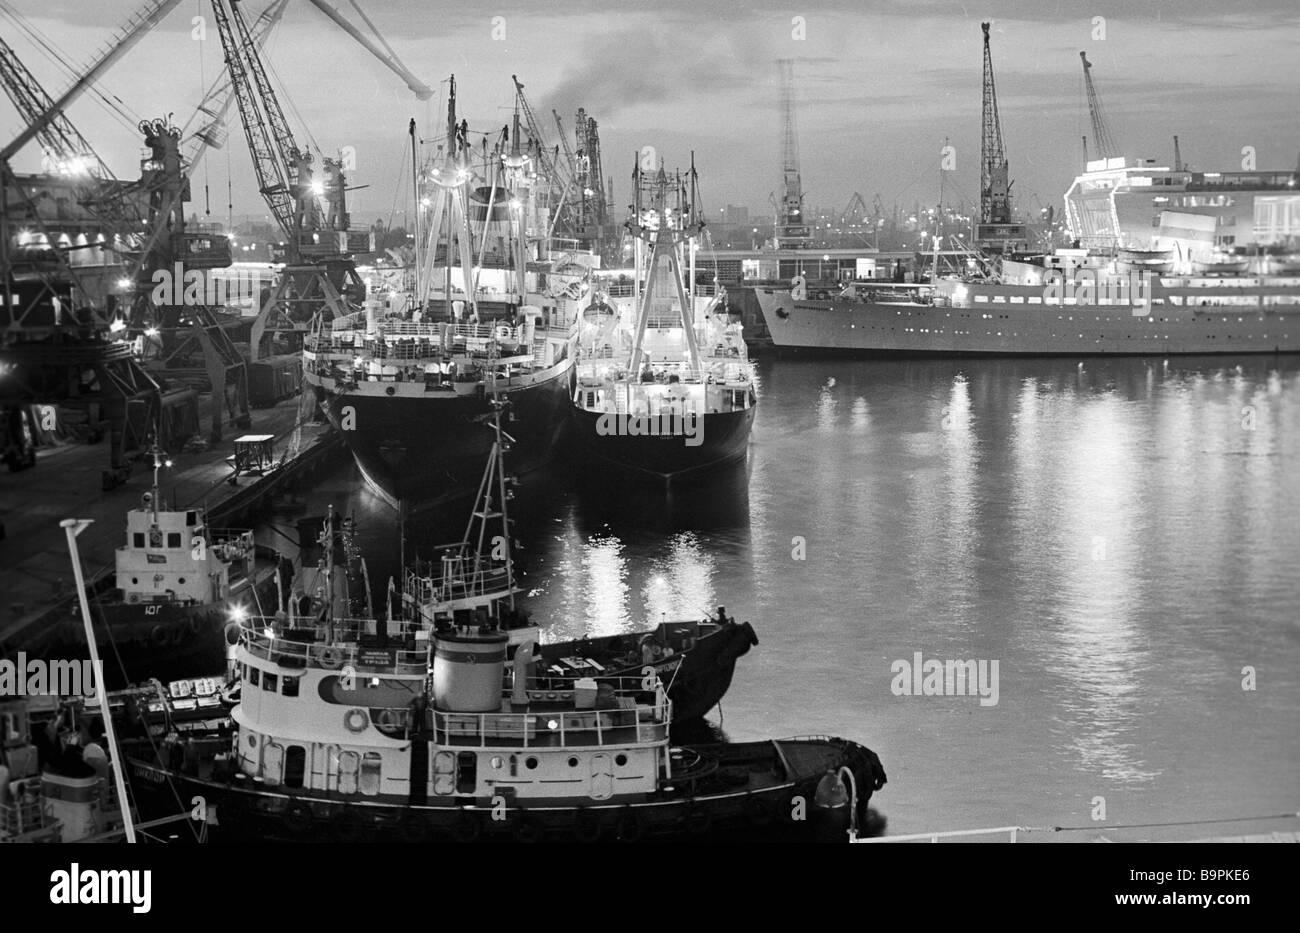 Ships anchored in the Odessa merchant port - Stock Image